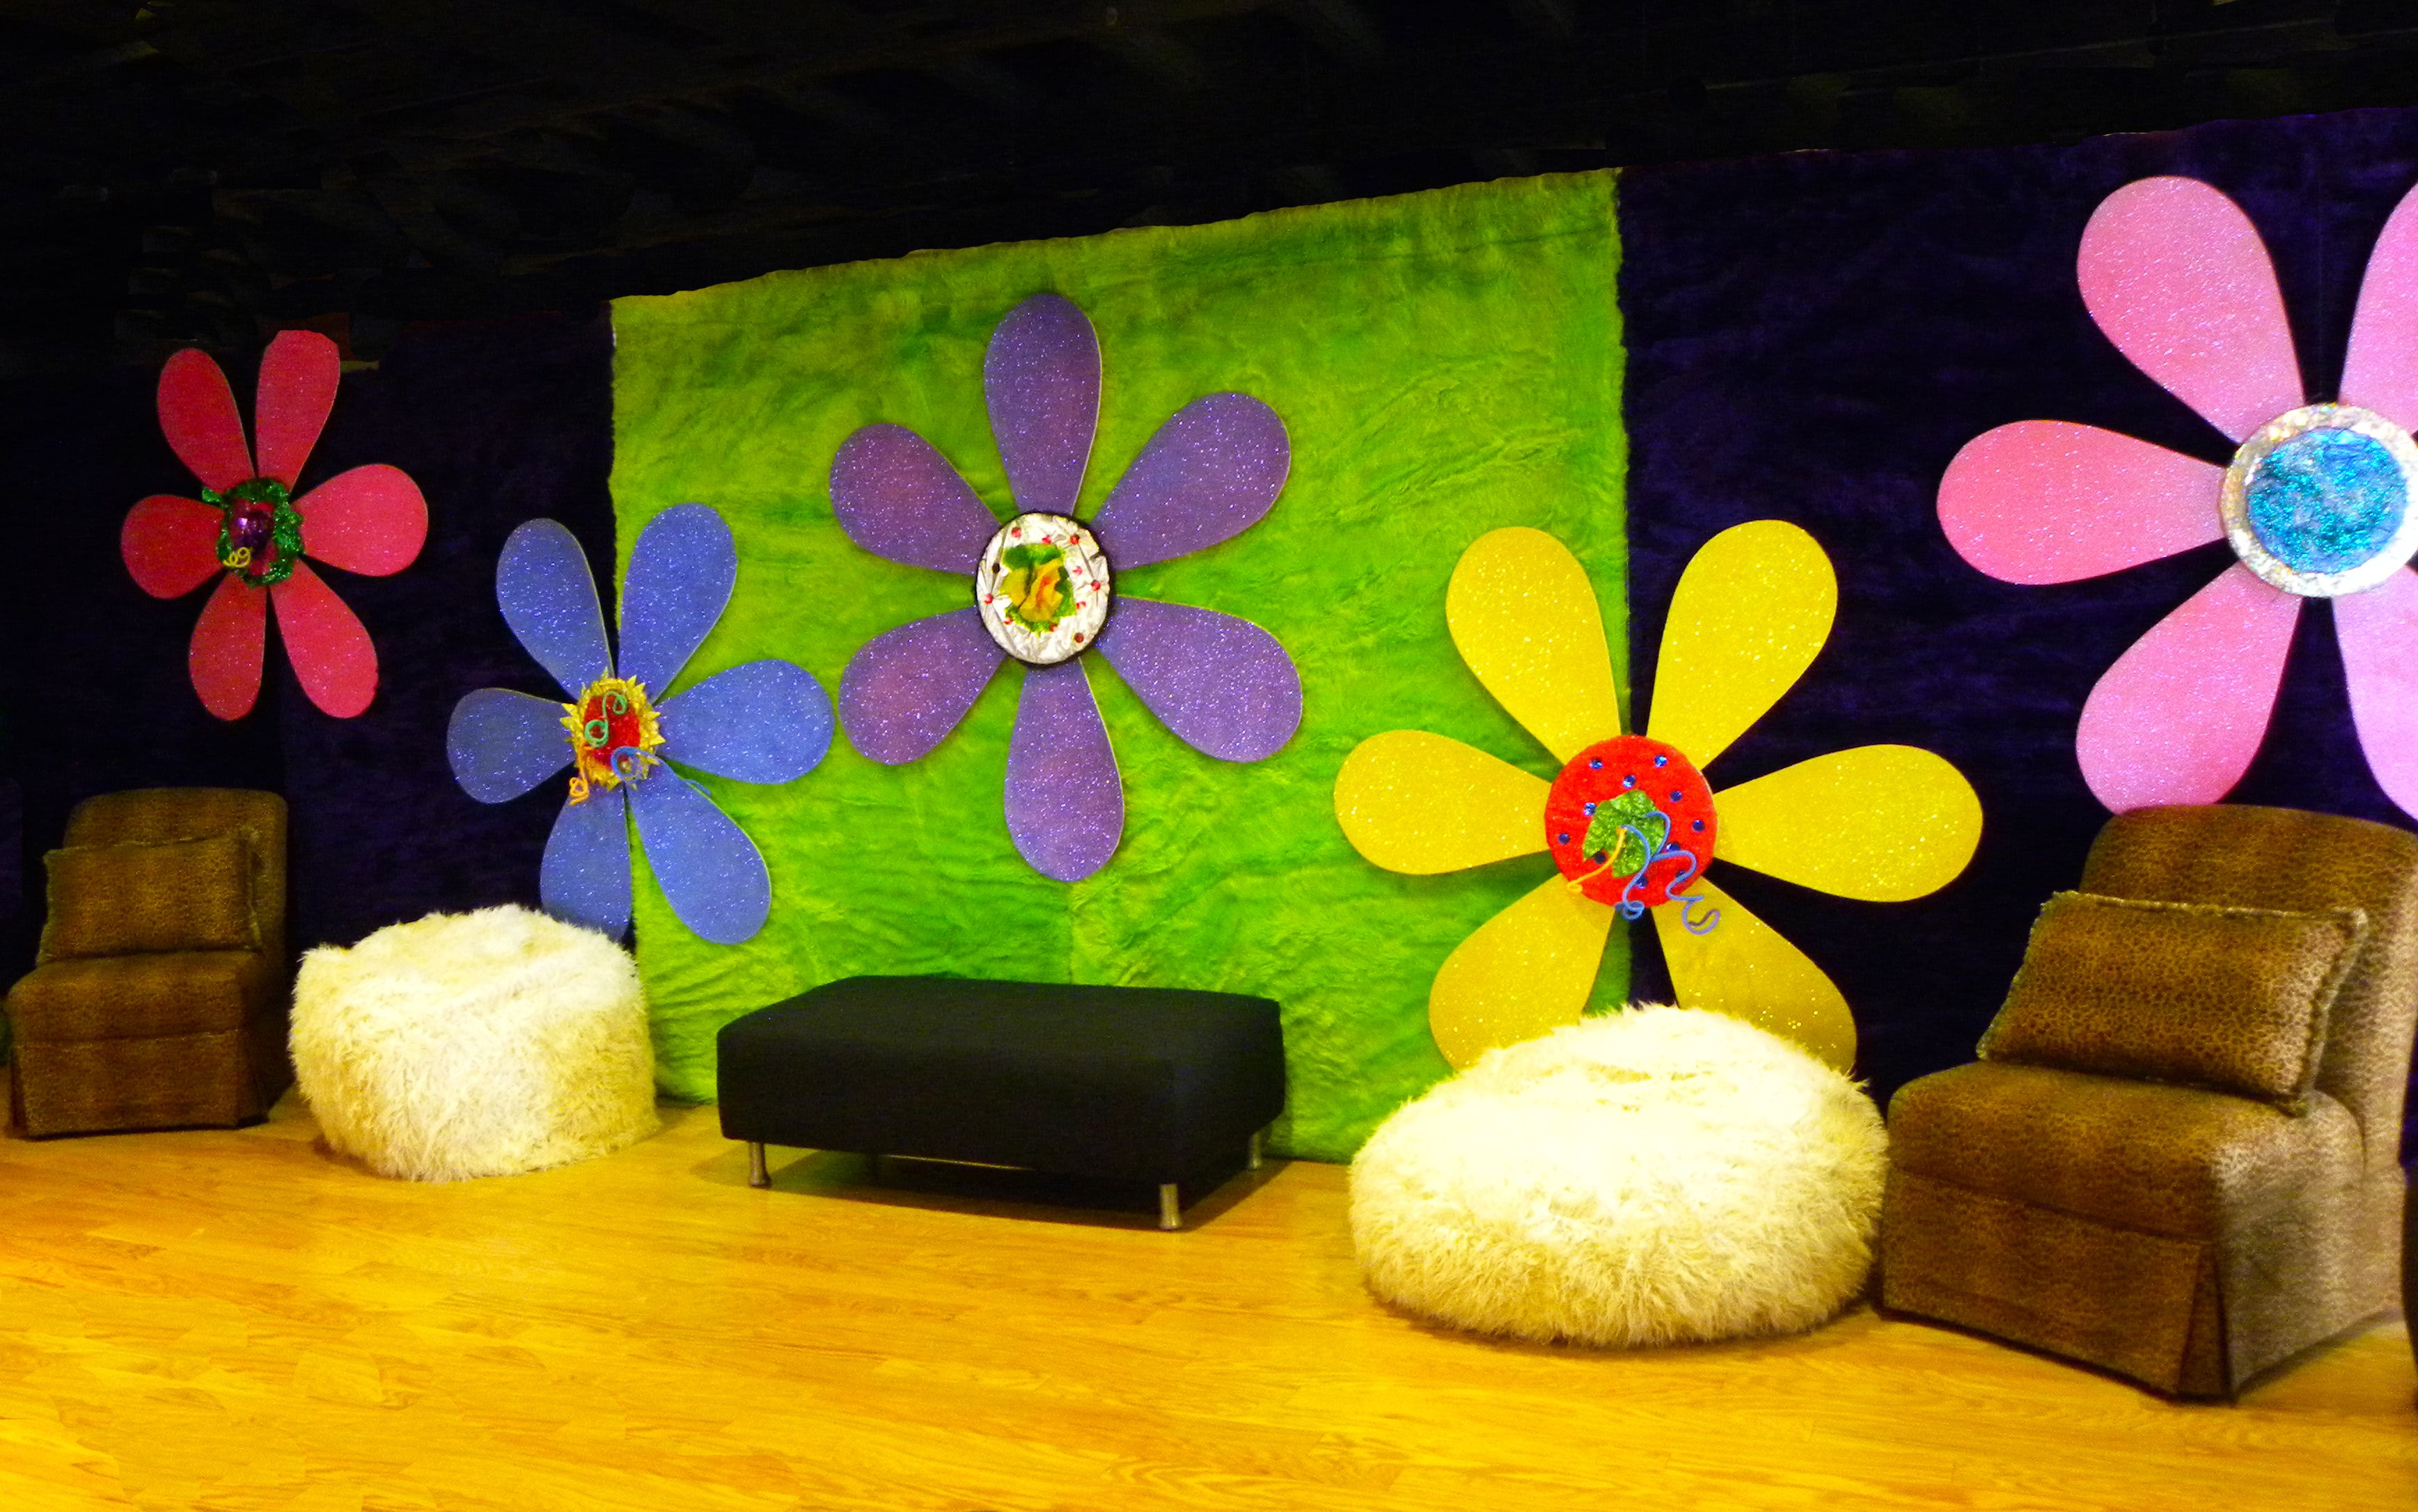 Groovy flower backdrop with retro seating 70 39 s party for 70 birthday decoration ideas